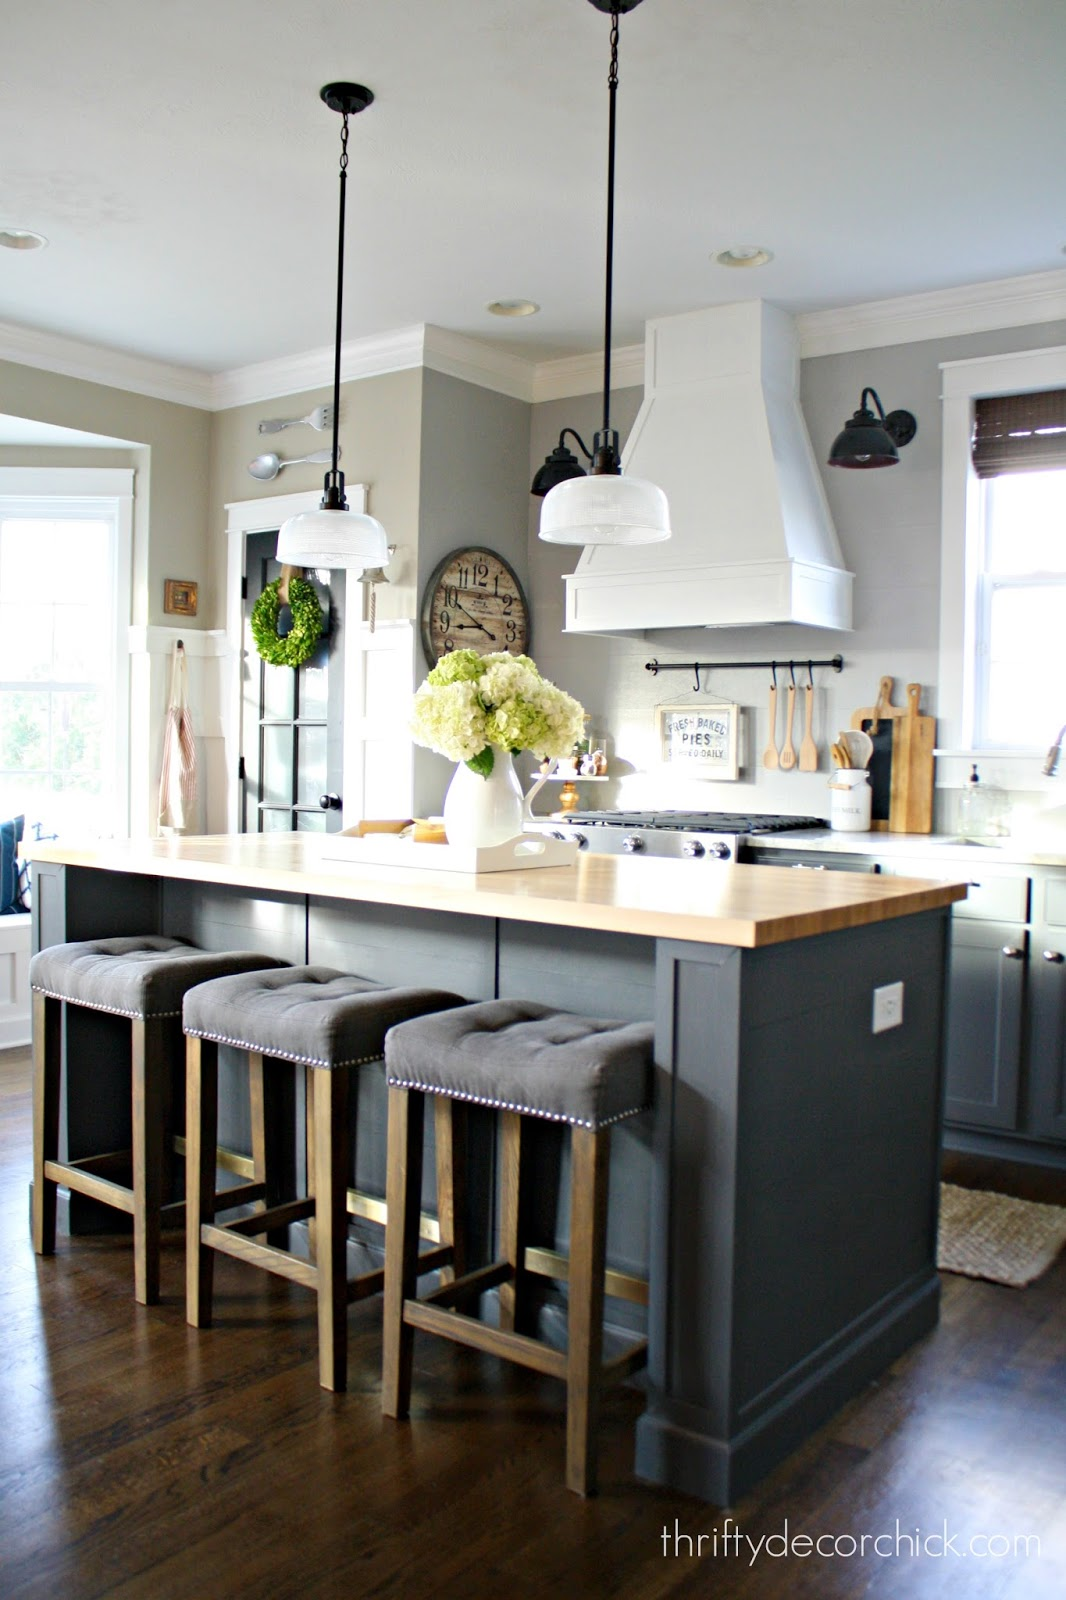 exciting kitchen island ideas decorating diy projects | Kitchen DIYs, Details and Sources! from Thrifty Decor Chick